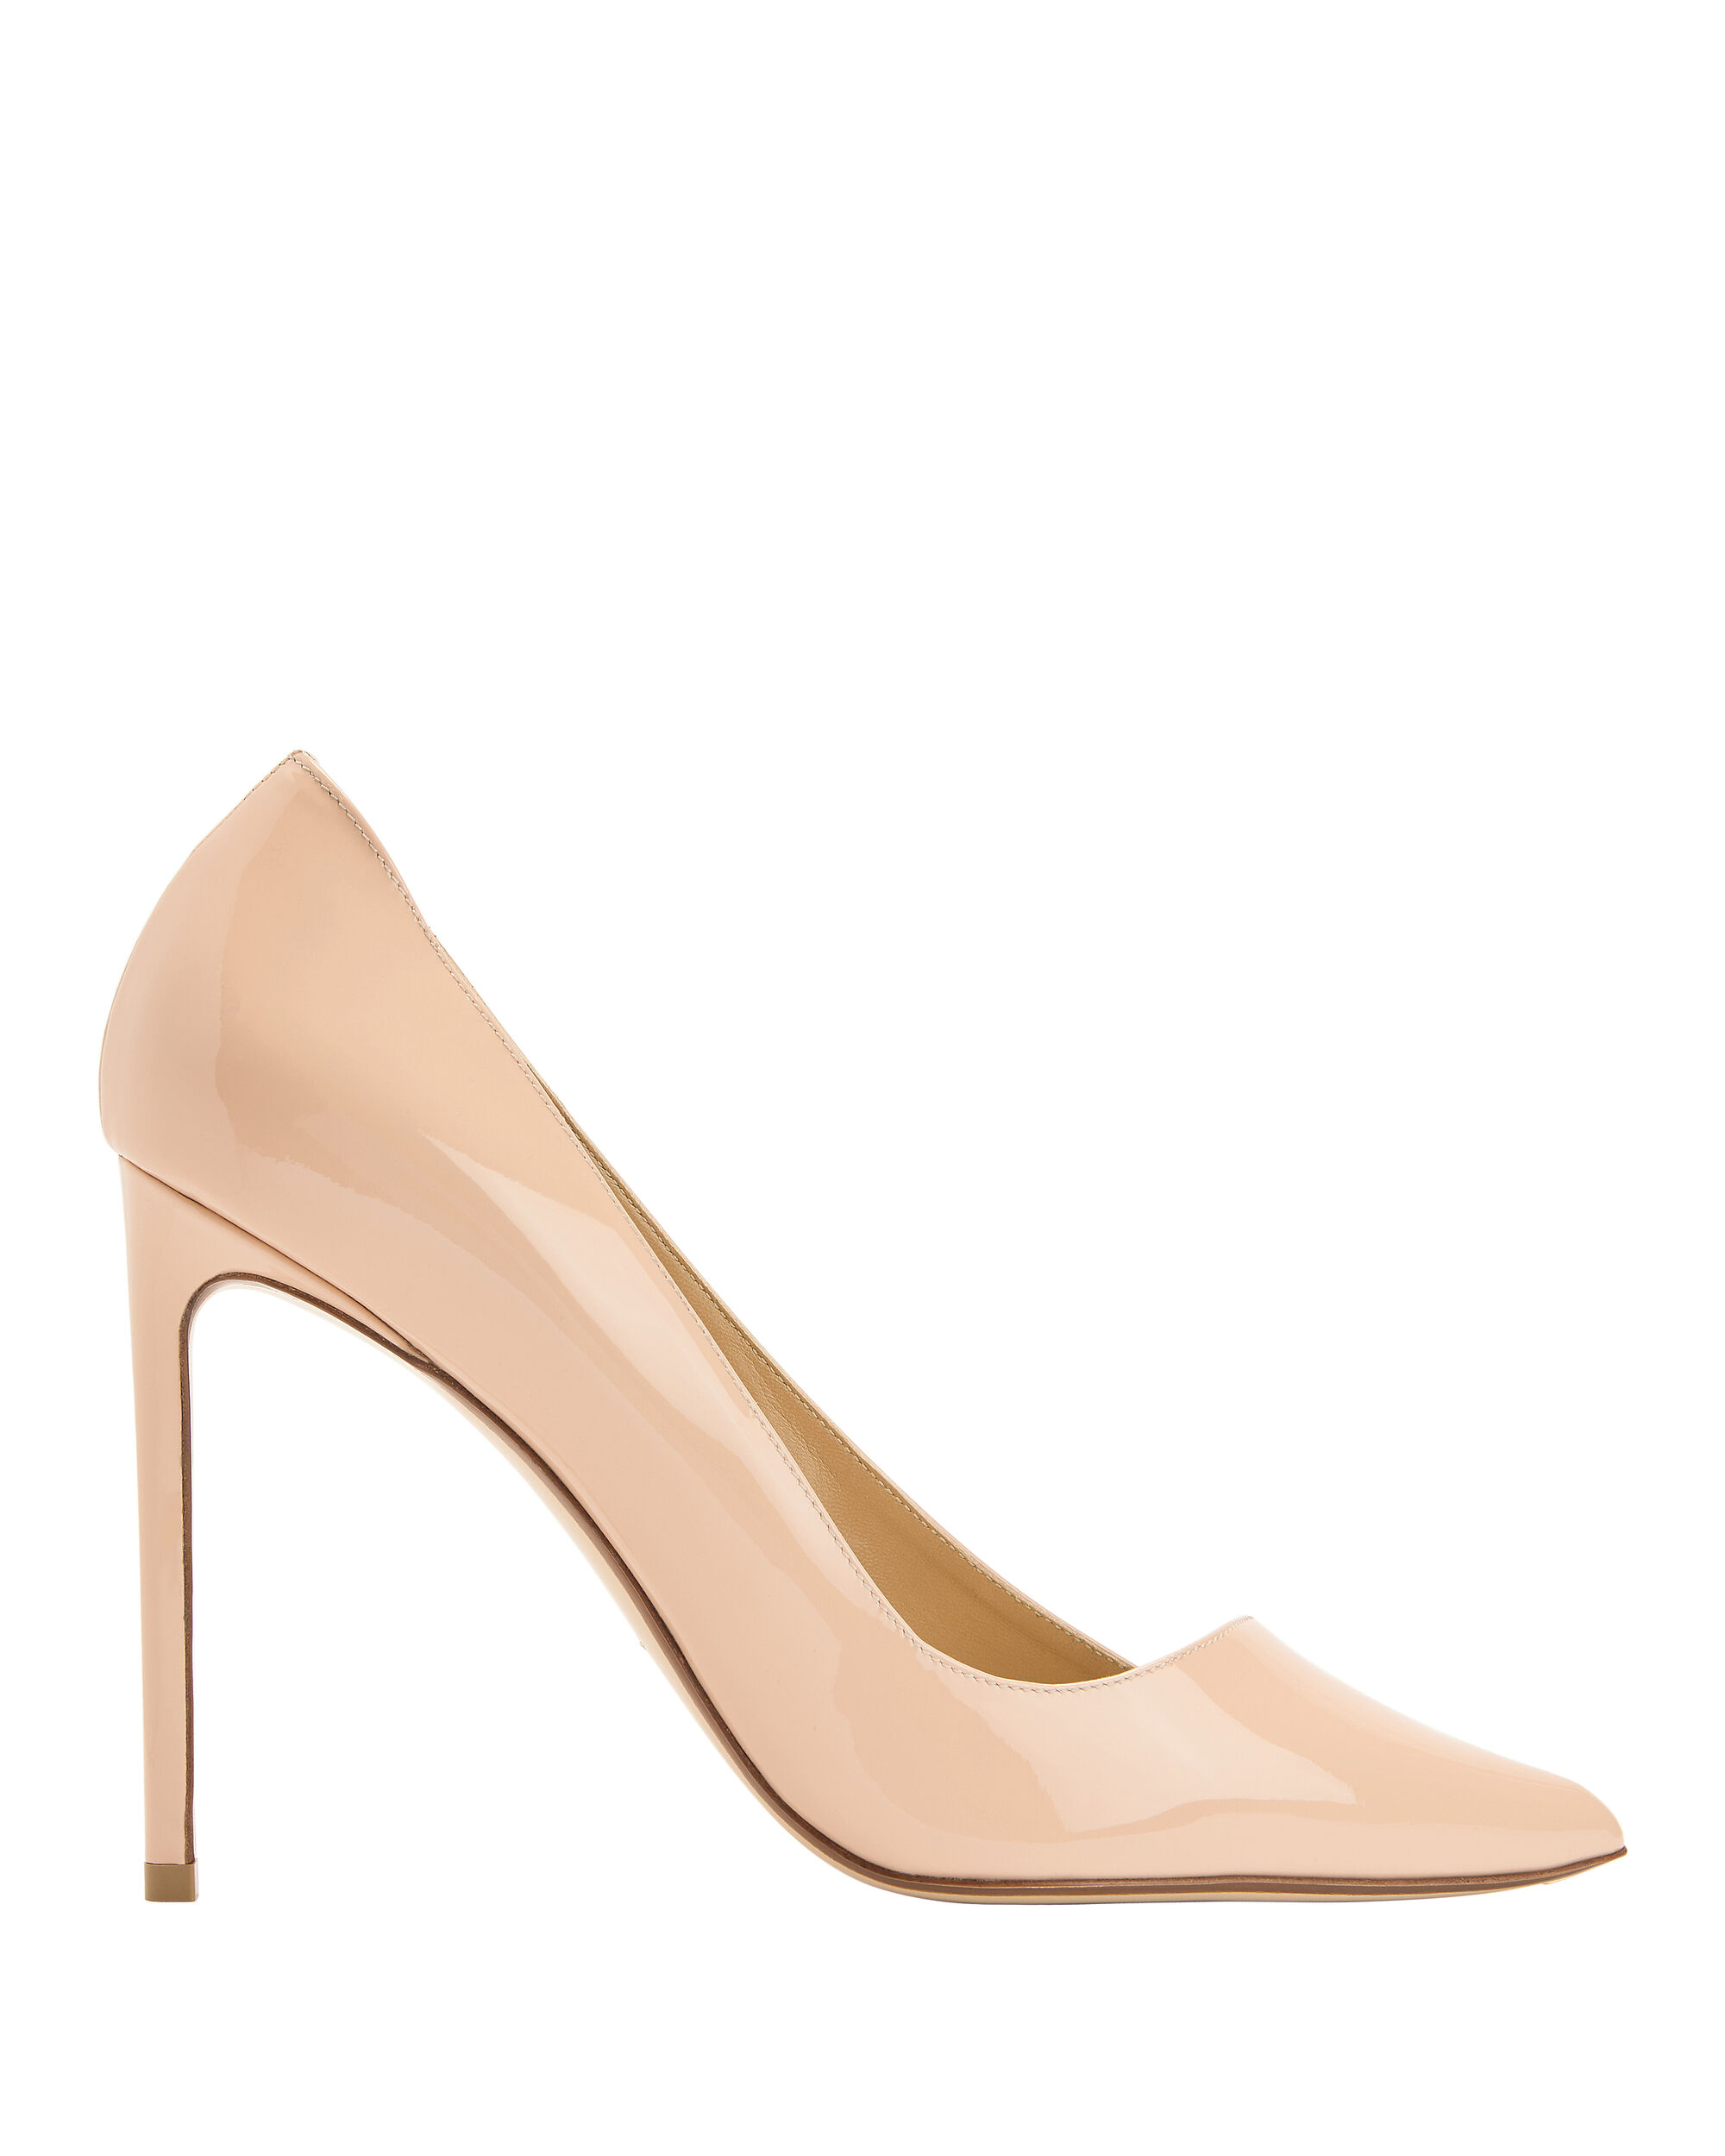 NUDE PATENT LEATHER PUMPS BEIGE